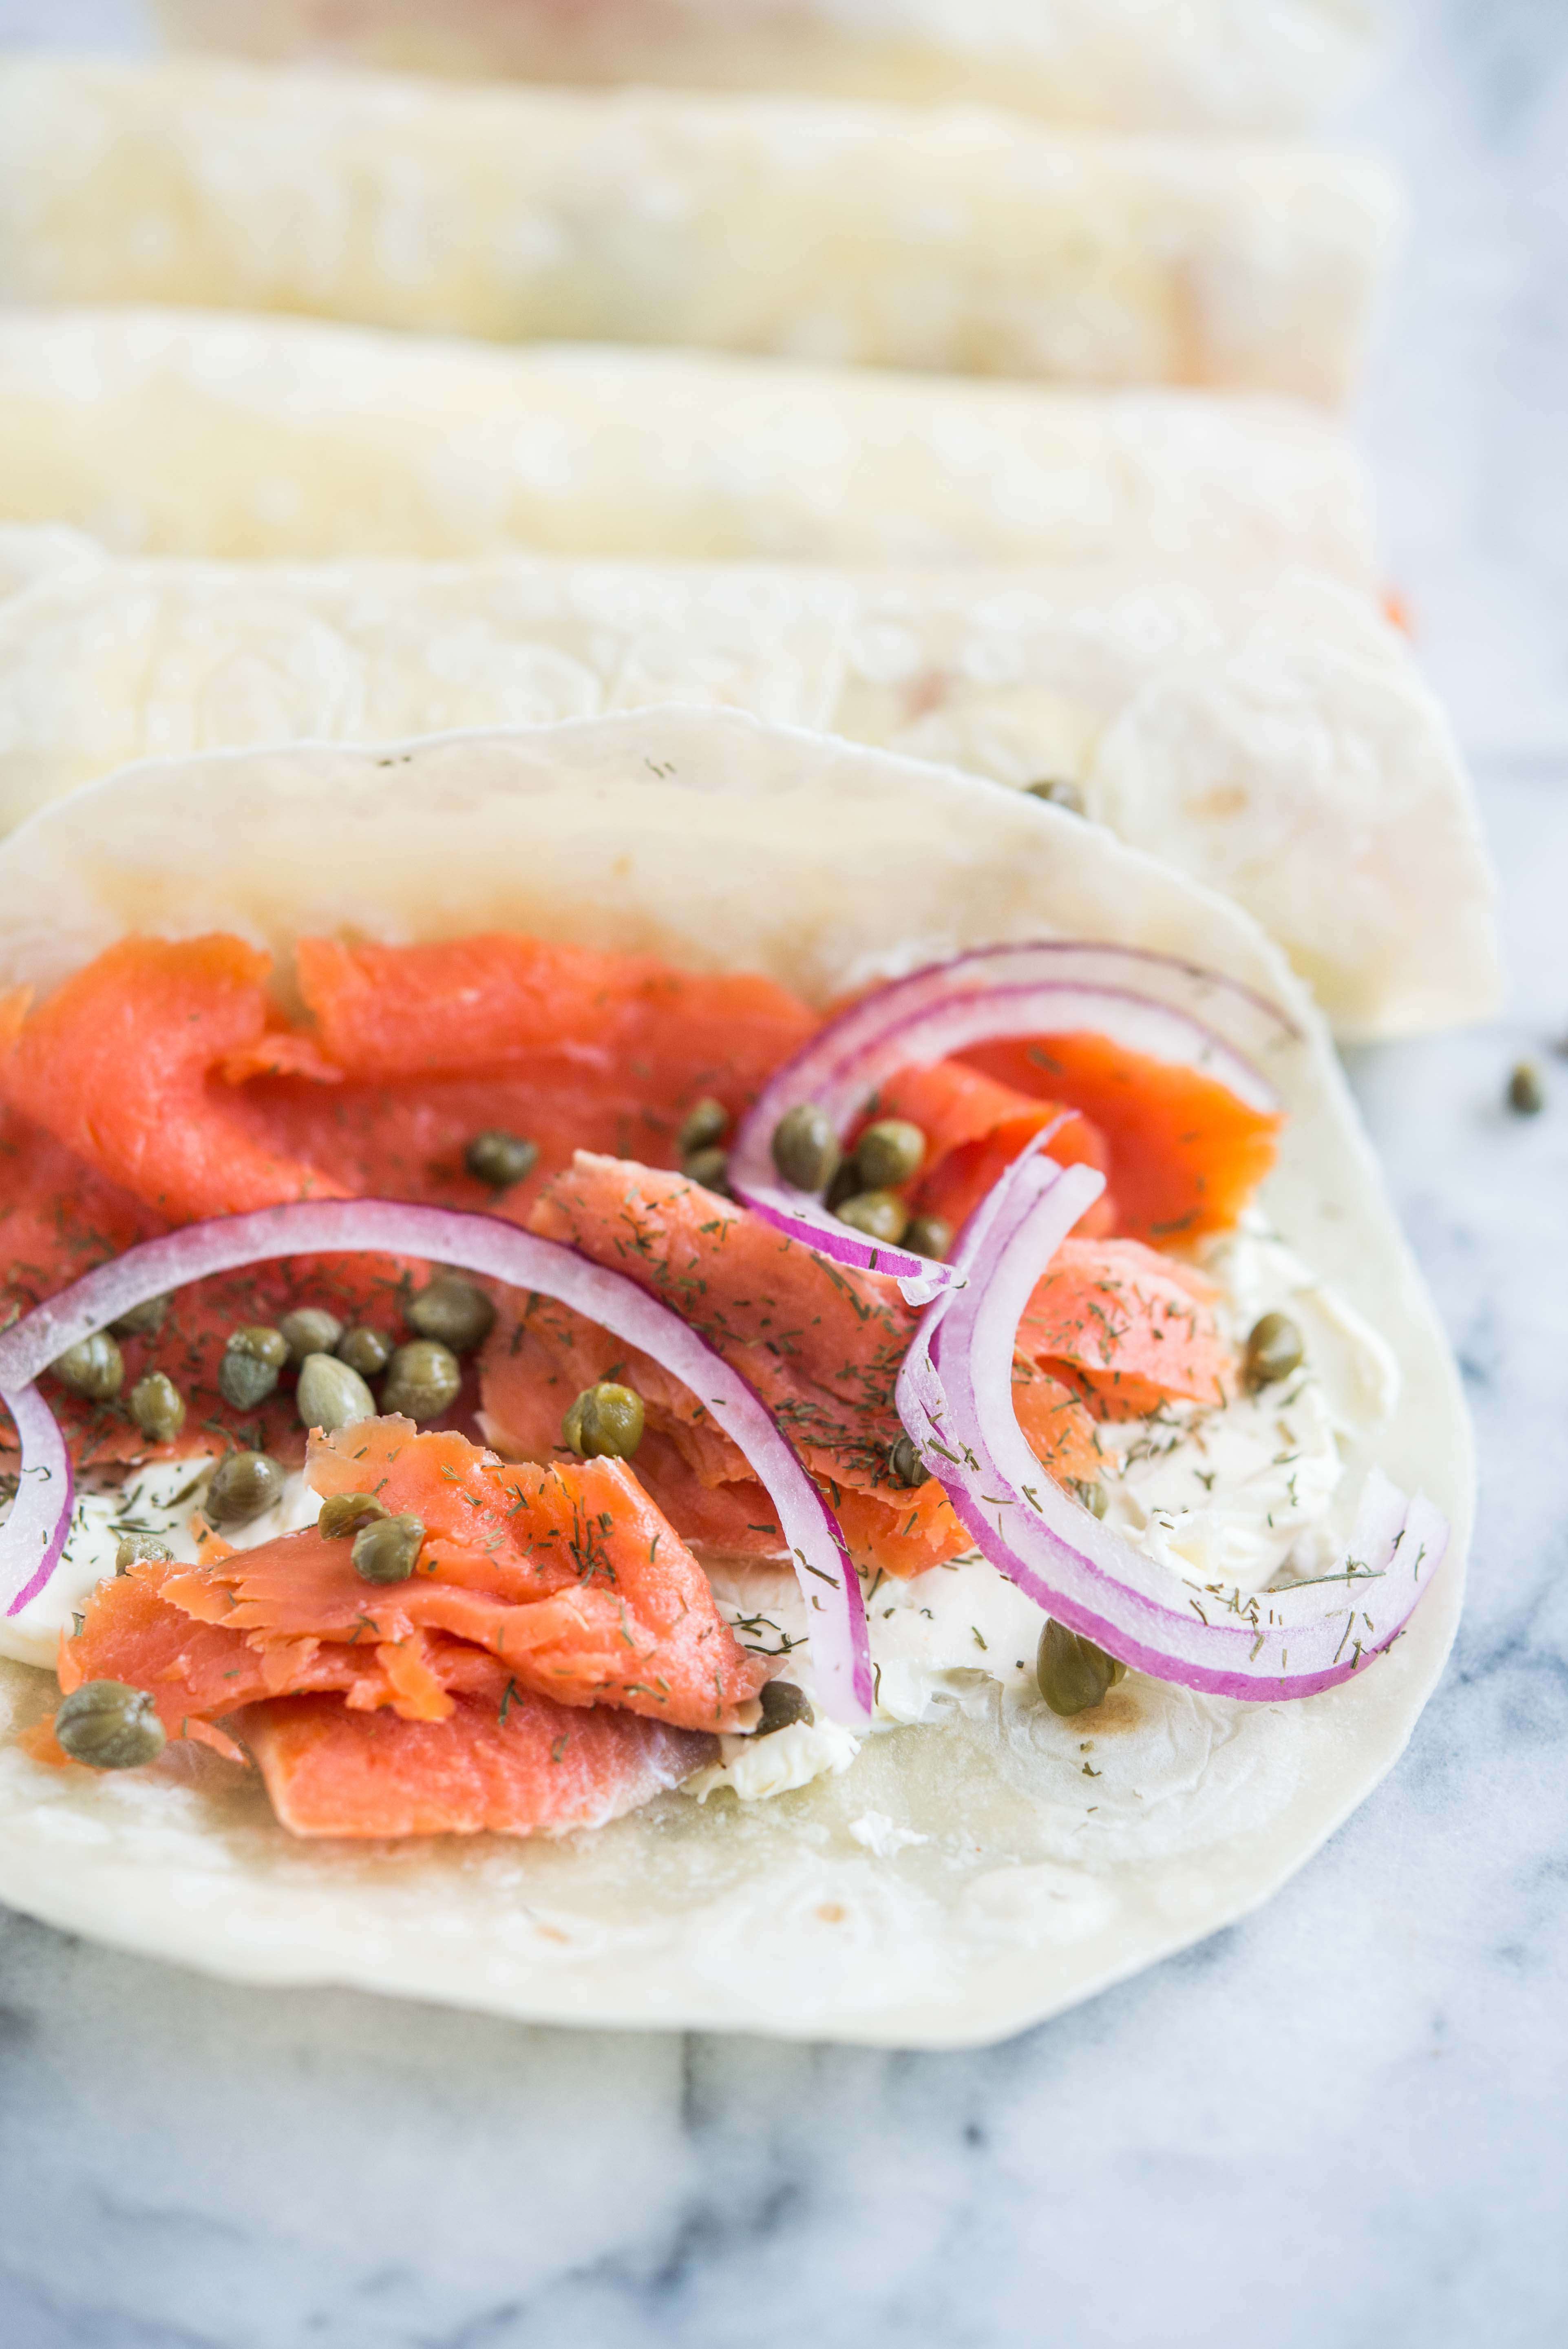 smoked salmon lunch wrap - tortilla smeared with cream cheese, smoked salmon, capers, and red onion, on a marble board